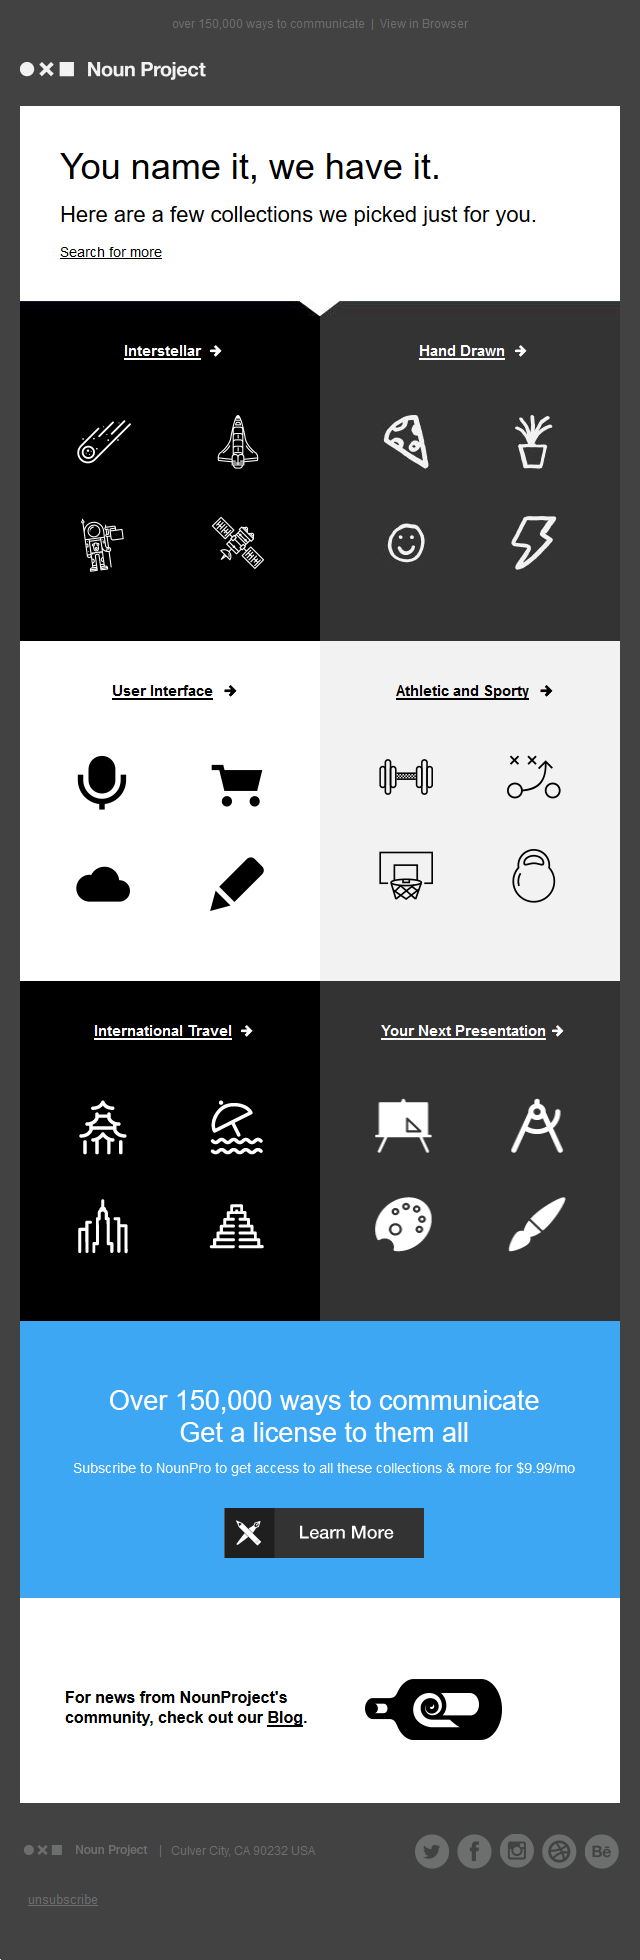 Noun Project - Icons picked just for you